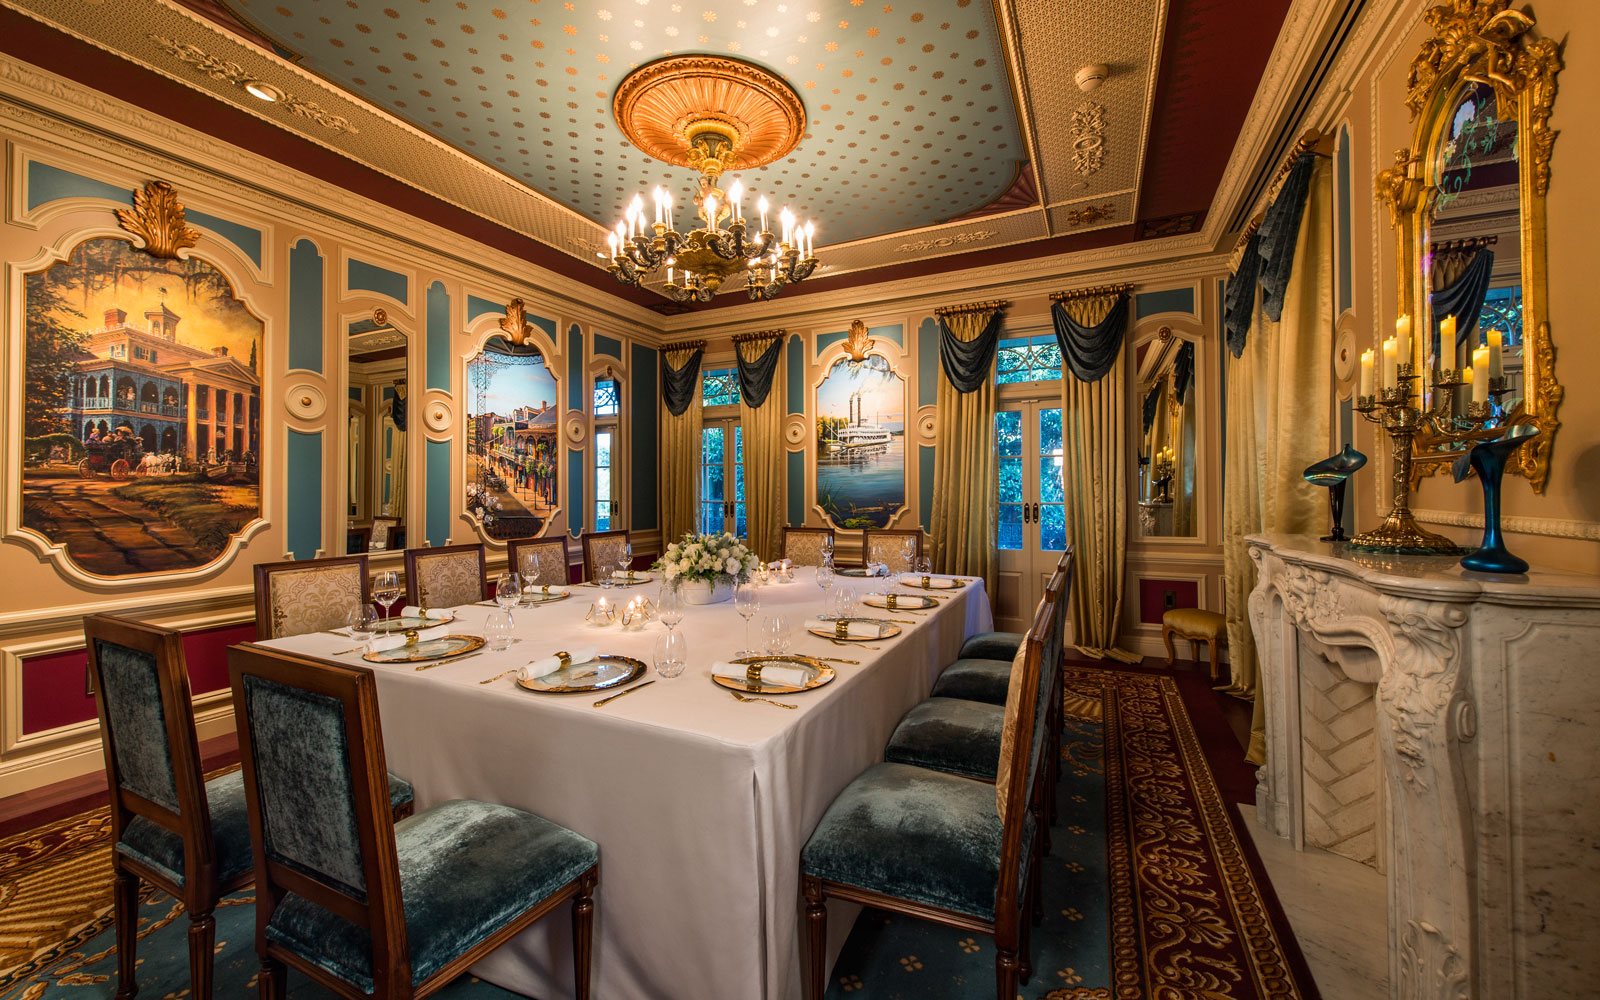 This Secret Dining Experience in Disneyland Costs $15,000